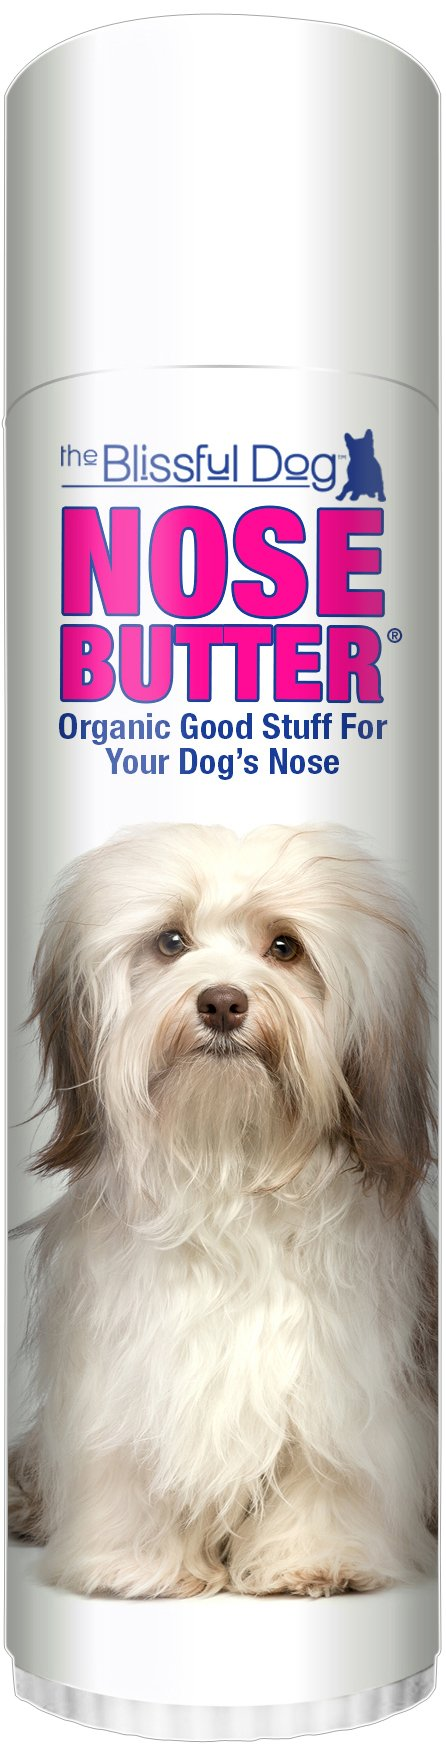 The Blissful Dog Havense Nose Butter, 0.50-Ounce by The Blissful Dog (Image #1)